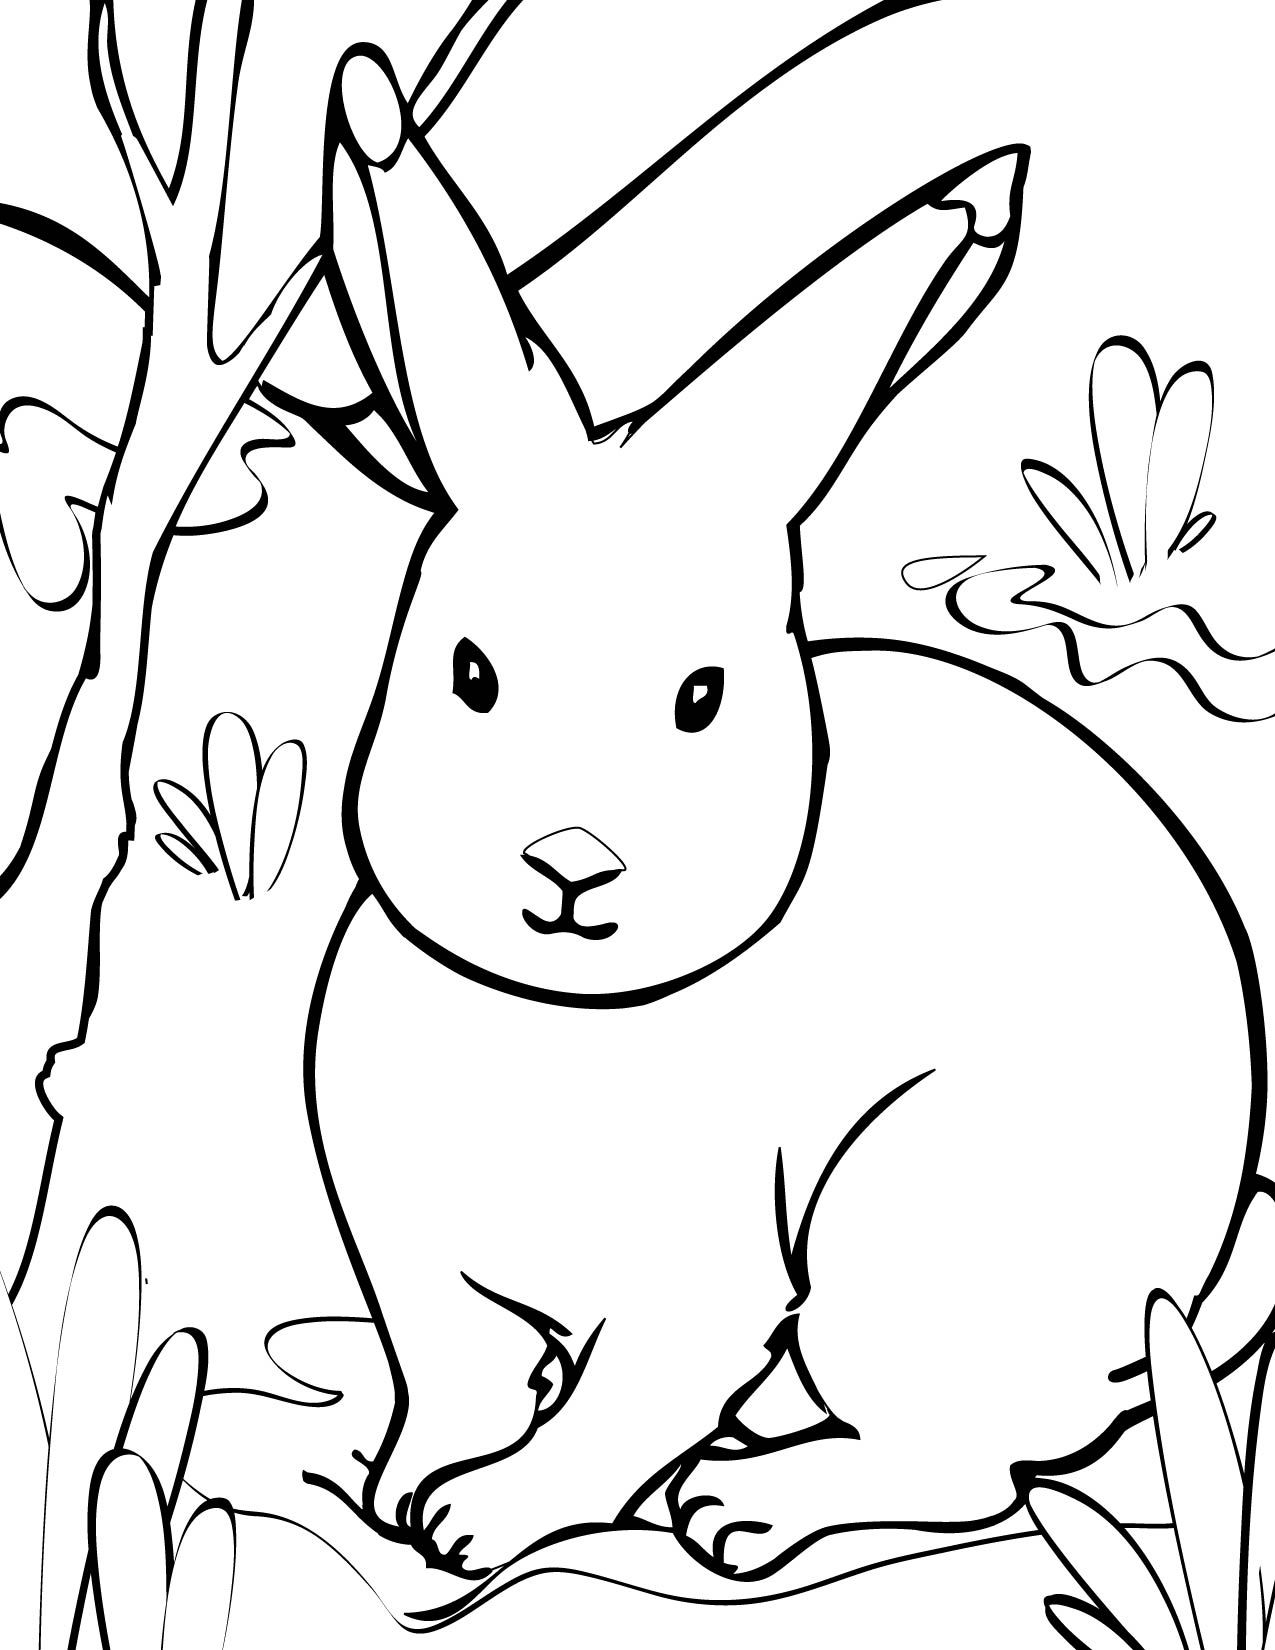 Animals free printable coloring pages ~ Animal Coloring Pages | Print This Page | Arctic Animals ...